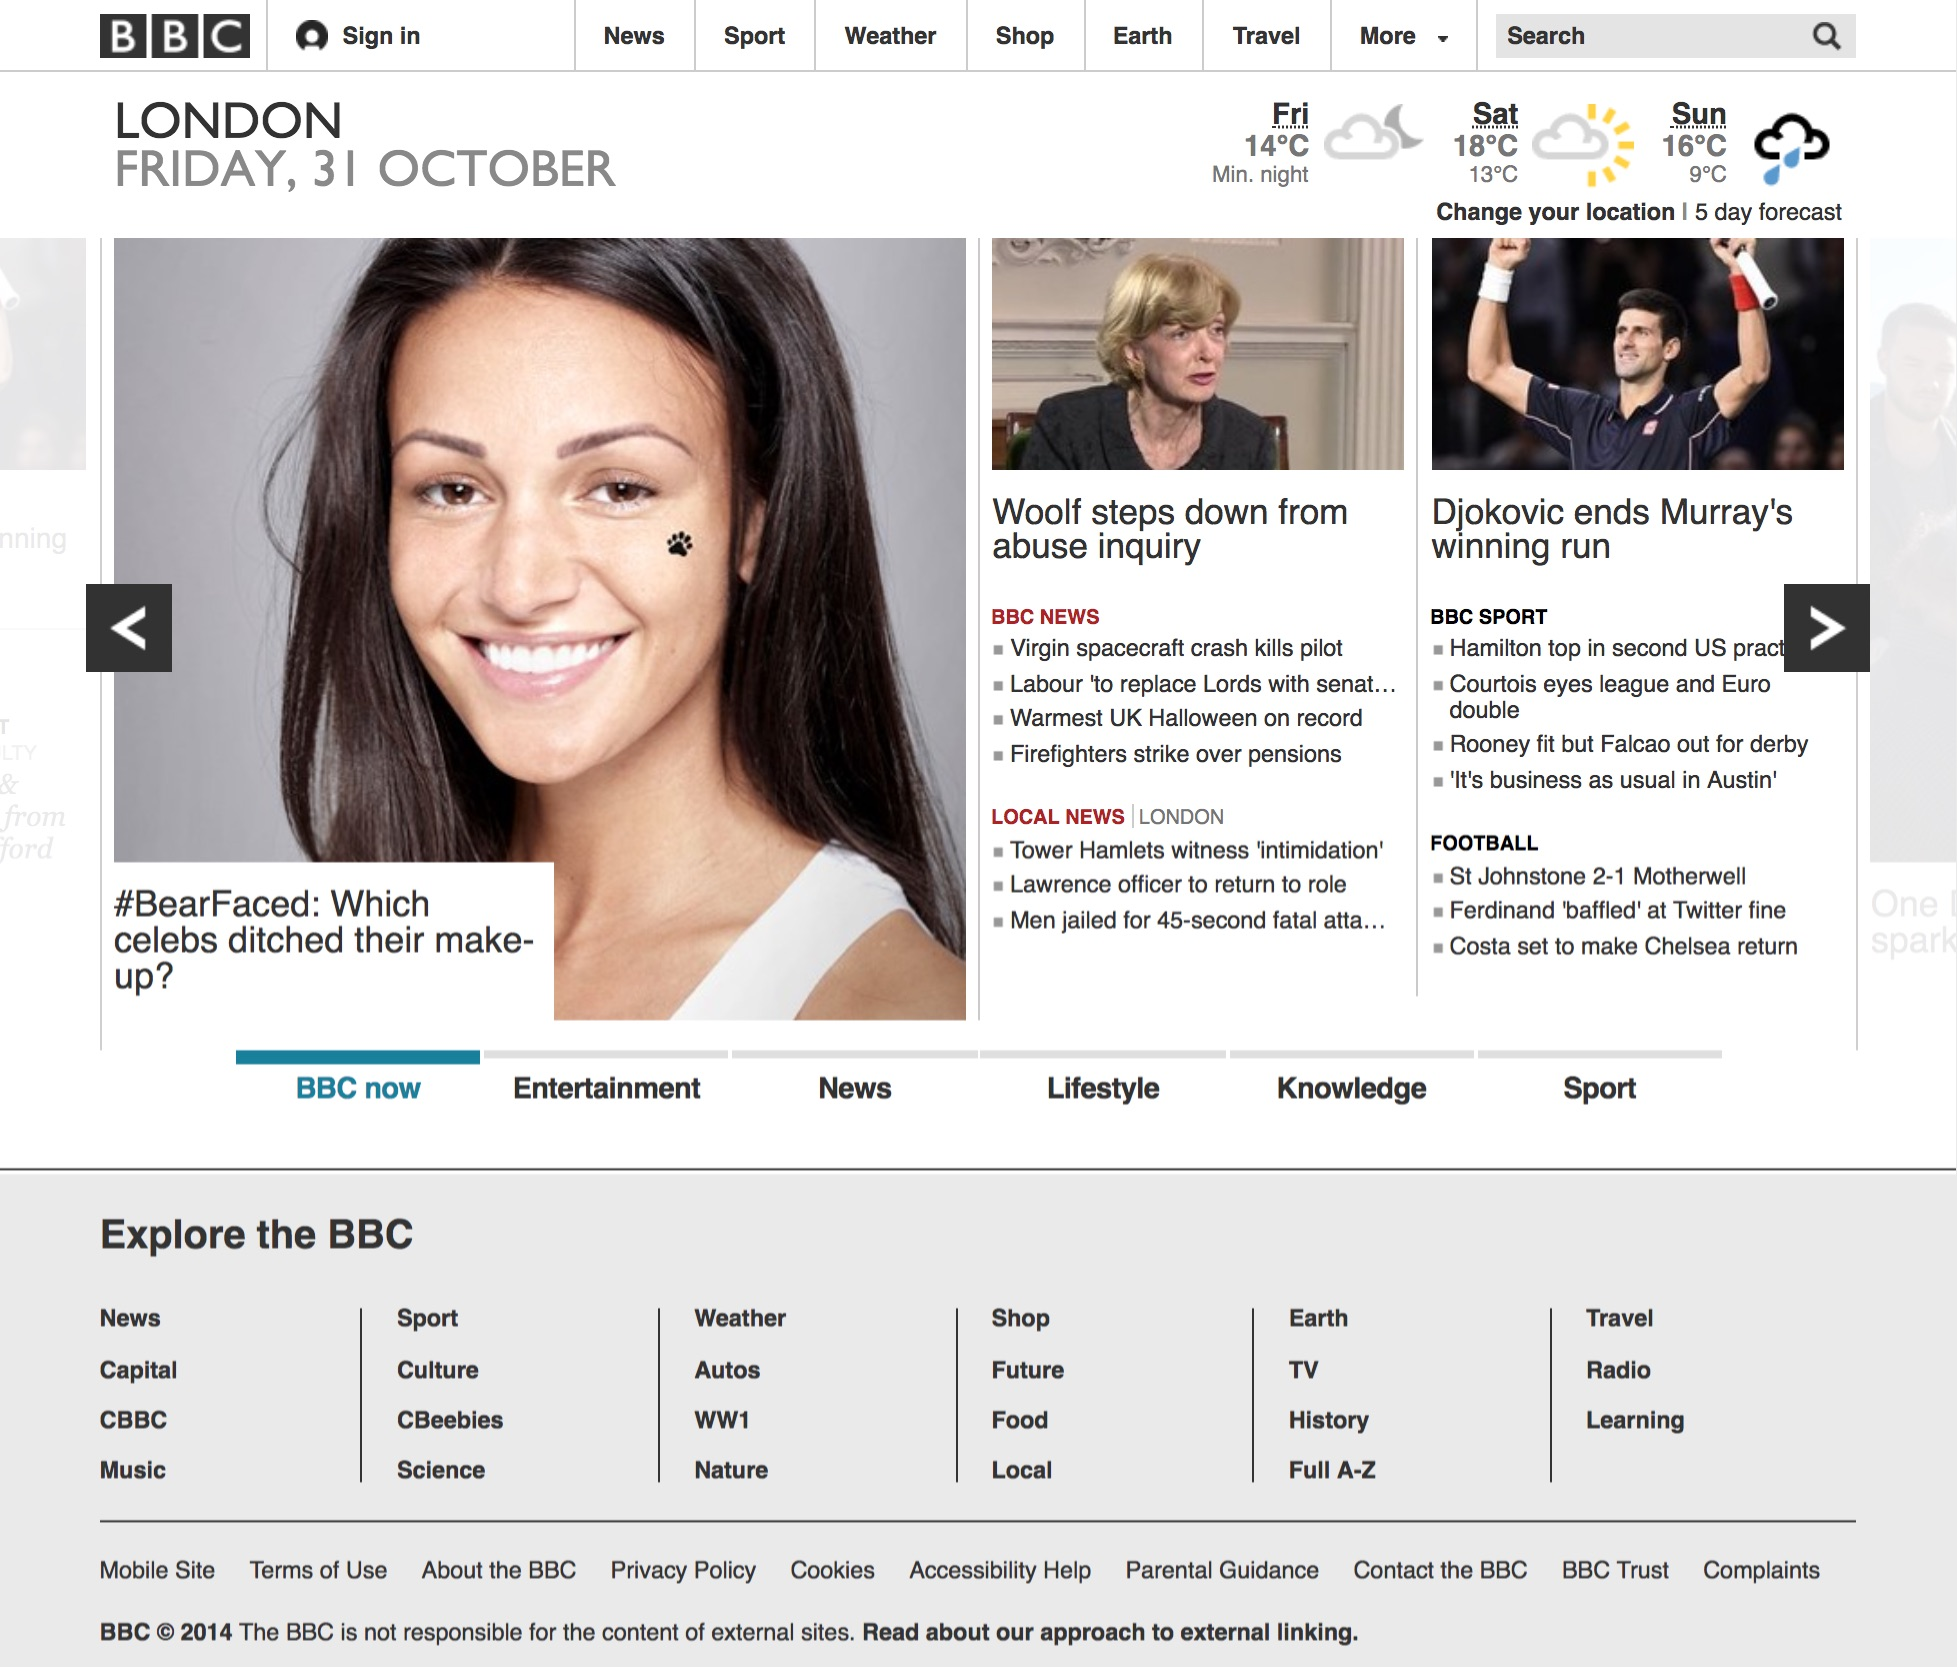 BBC.co.uk homepage (2014)